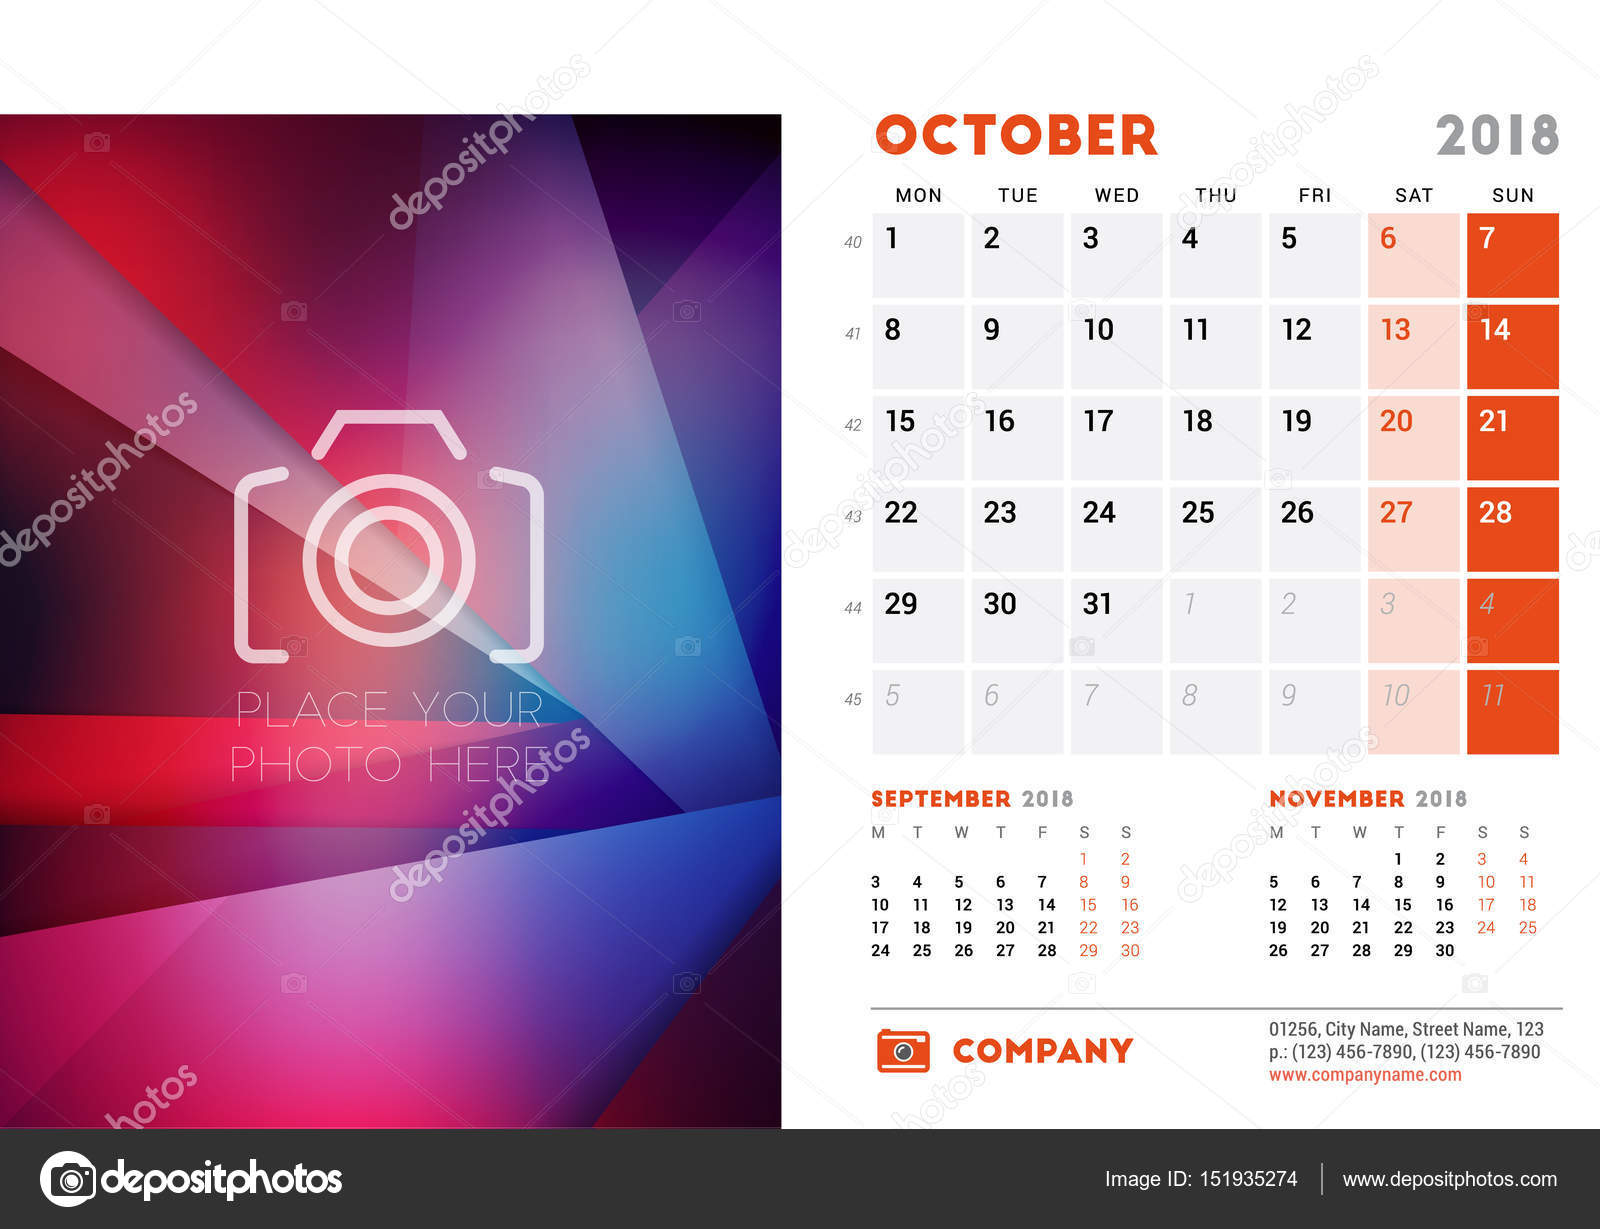 October 2018 Desk Calendar Design Template With Colorful Abstract